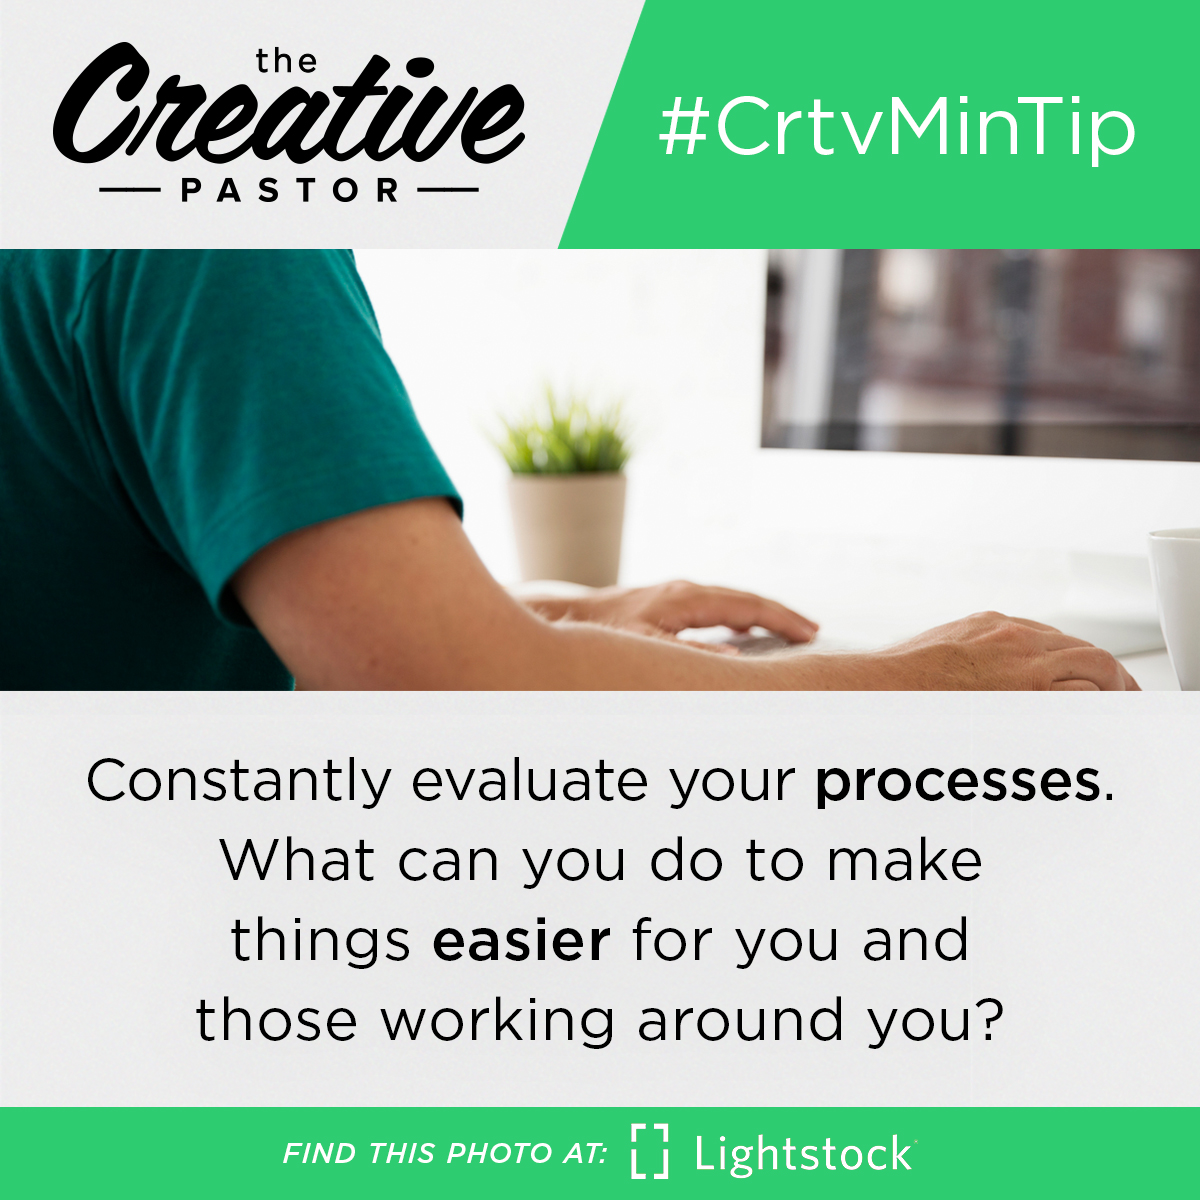 Constantly evaluate your processes. What can you do to make things easier for you and those working around you?